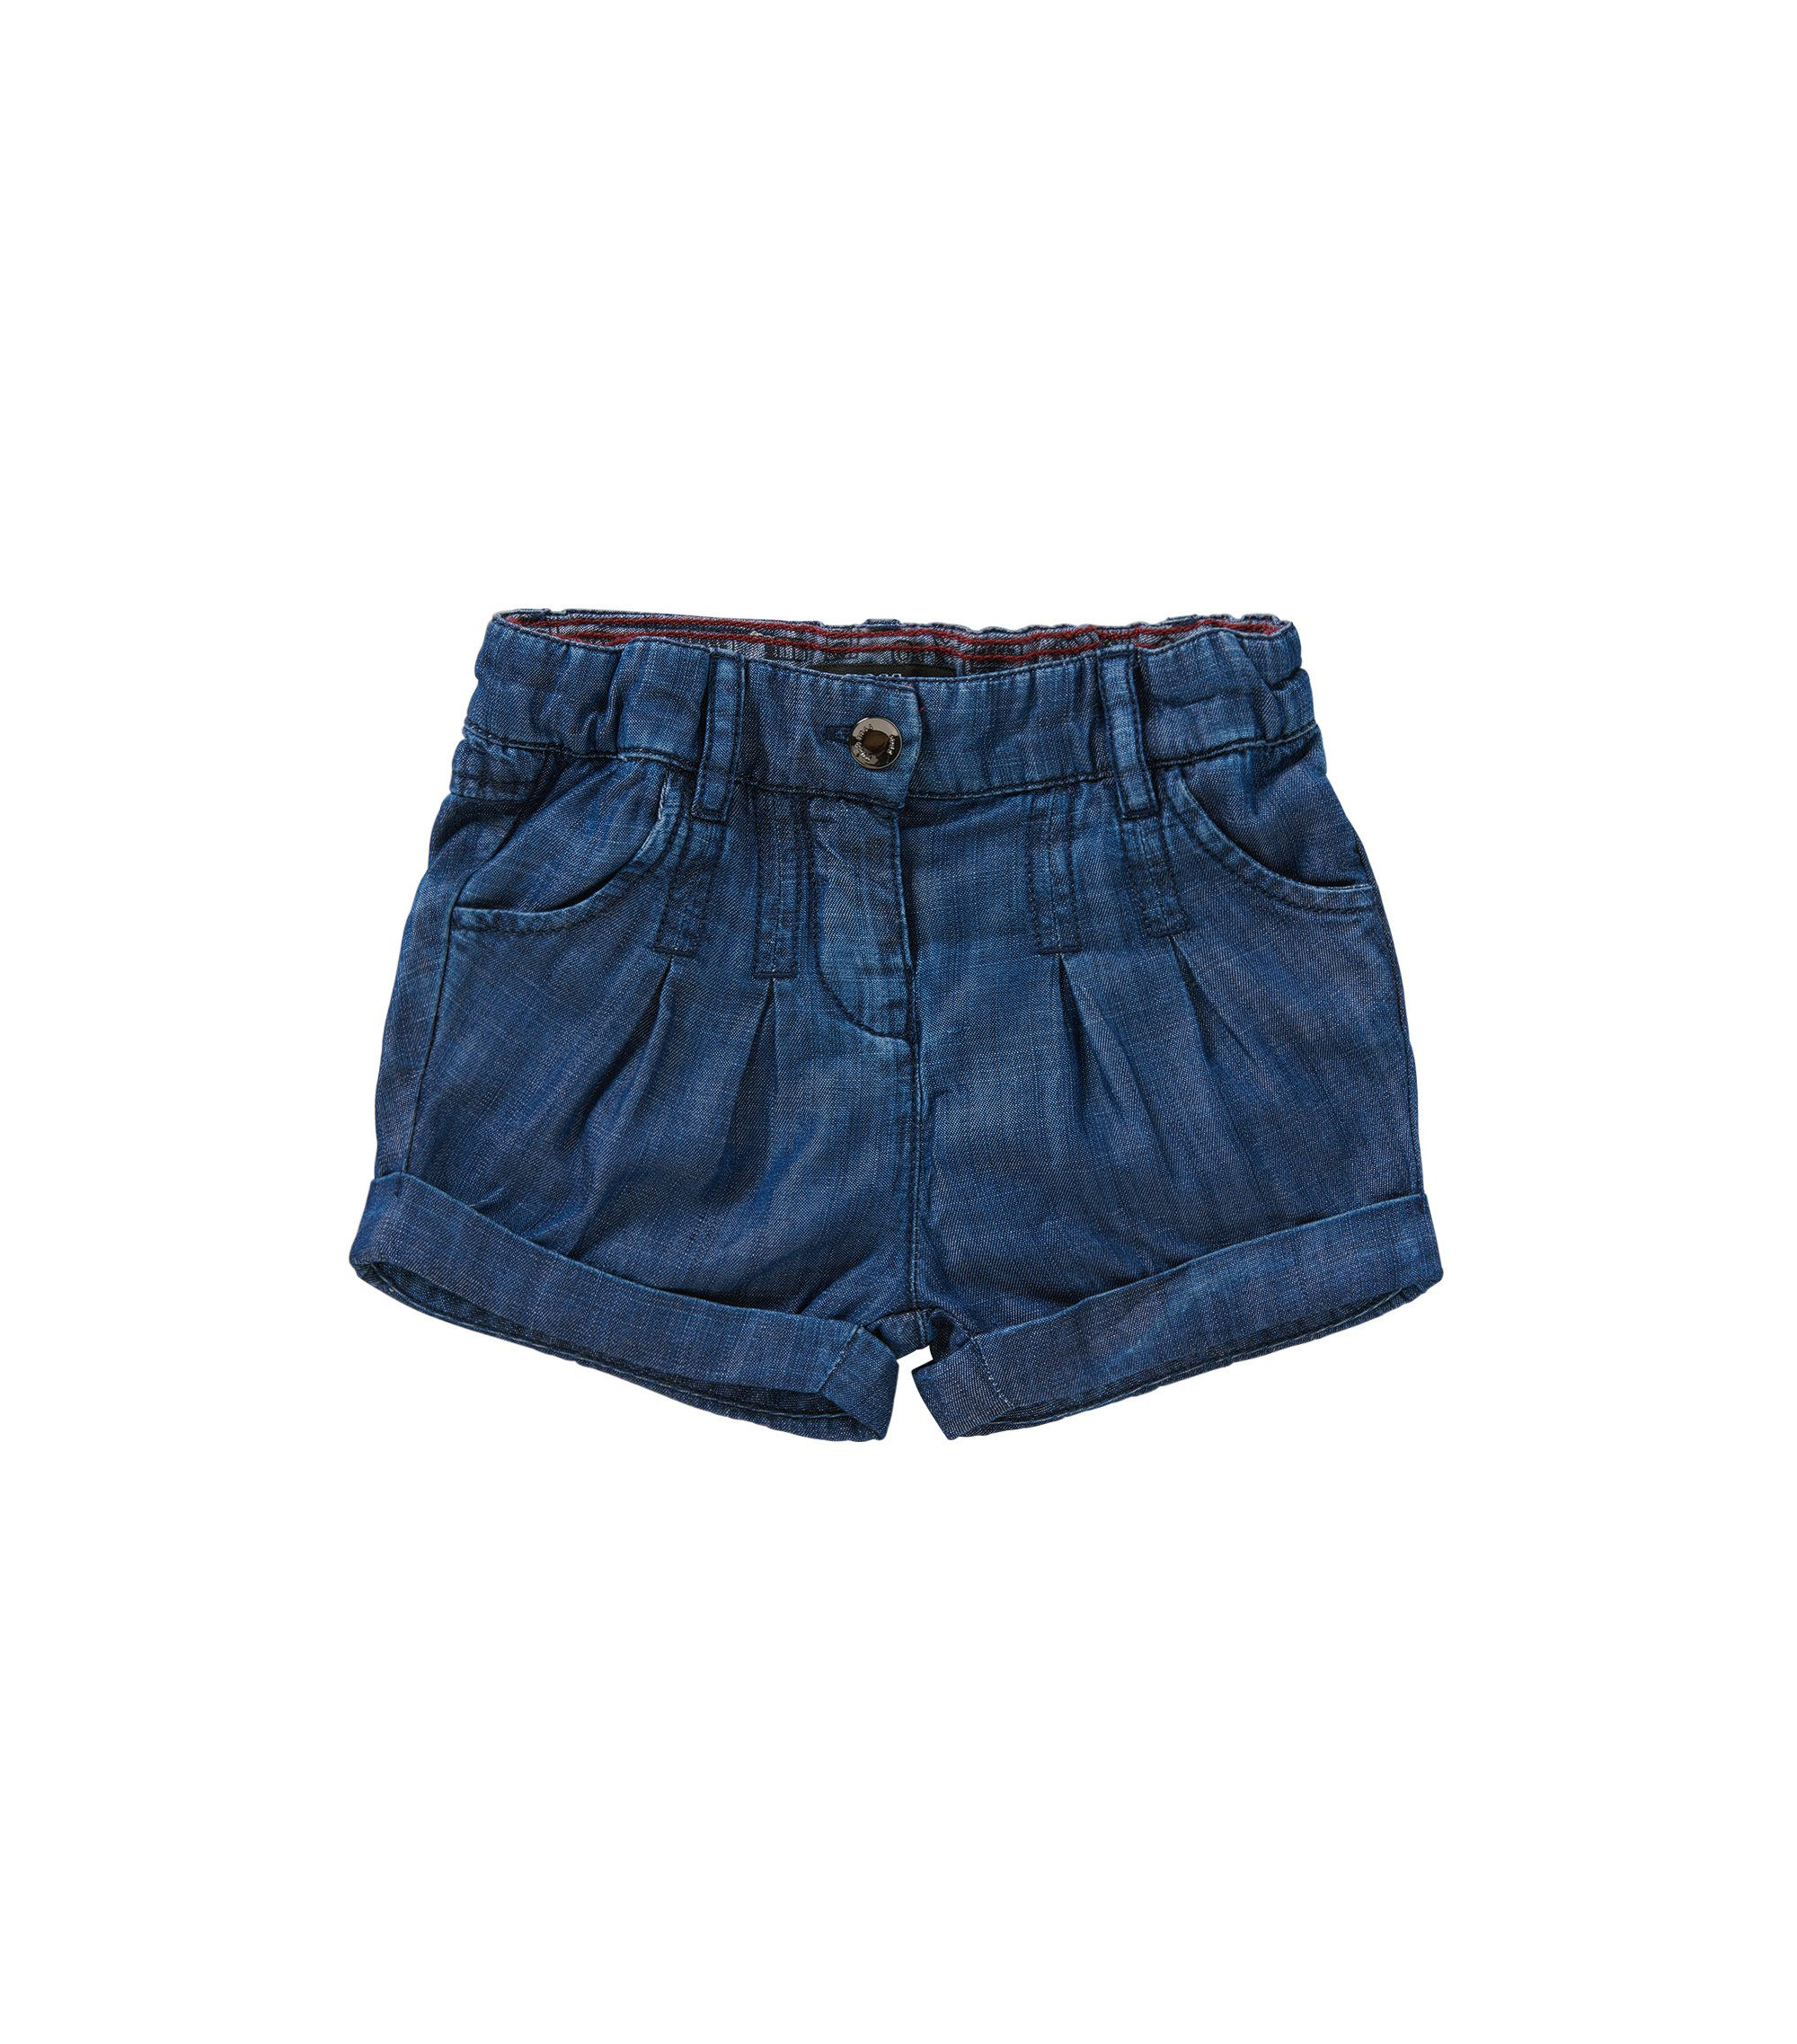 Regular-Fit Baby-Shorts in Denim-Optik mit Elastikbund: 'J04236', Gemustert